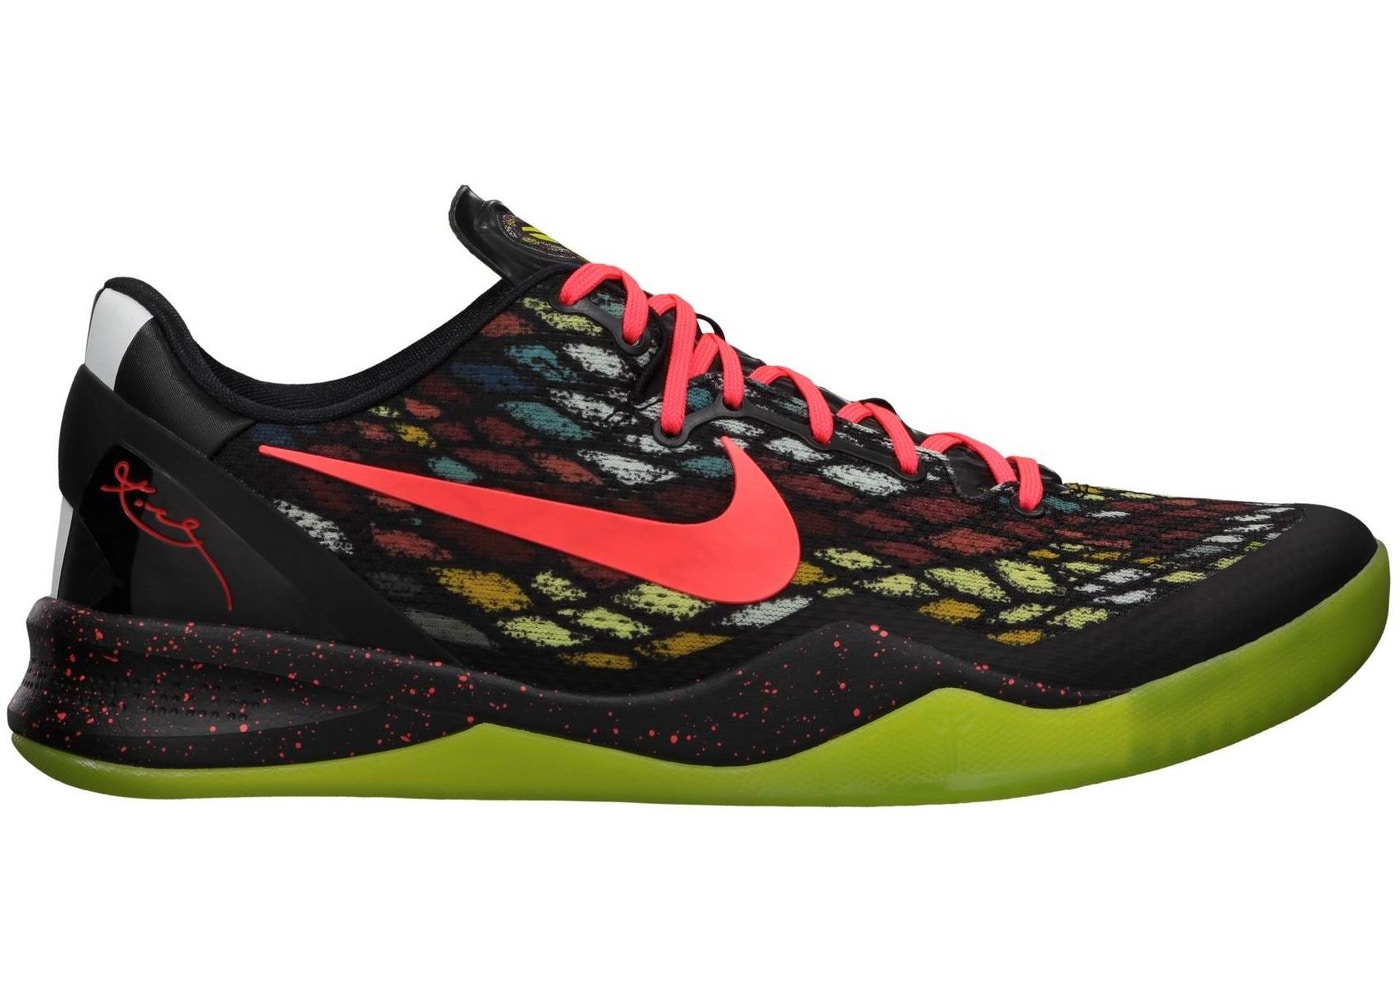 cheaper a18e4 dcdbc Kobe 8 Christmas (2012) - 555035-030